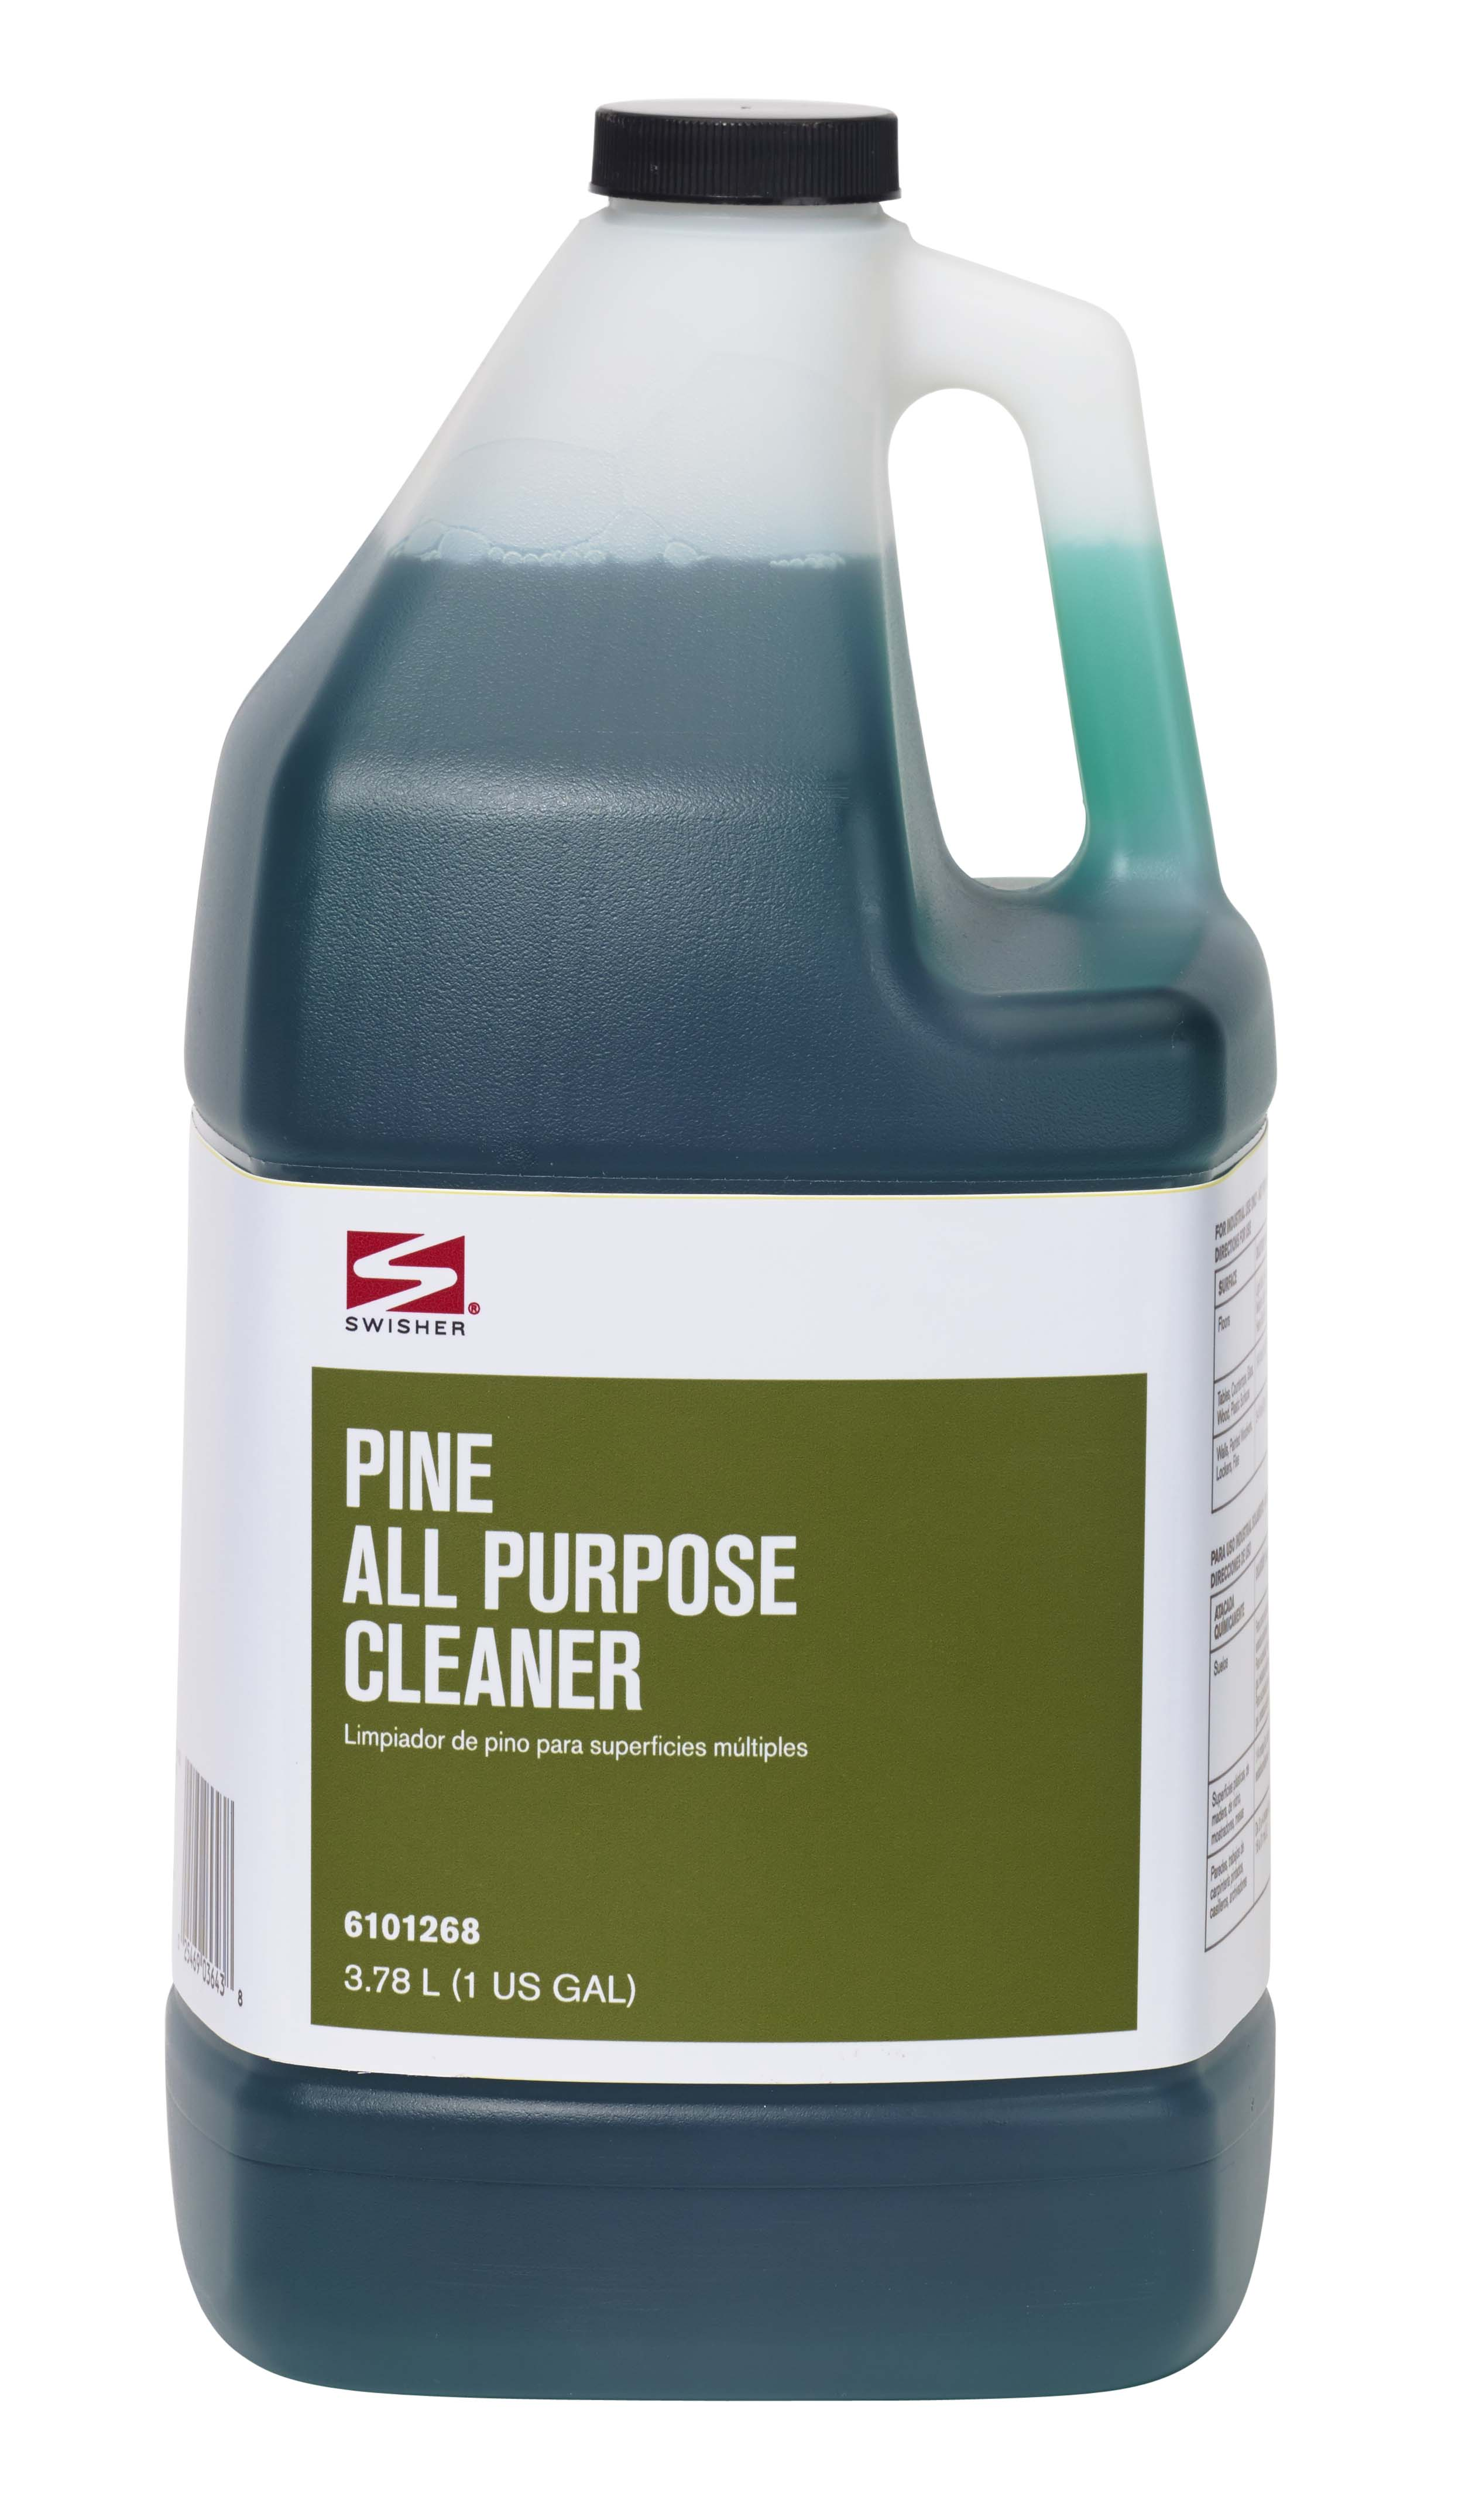 Swisher Pine All Purpose Cleaner